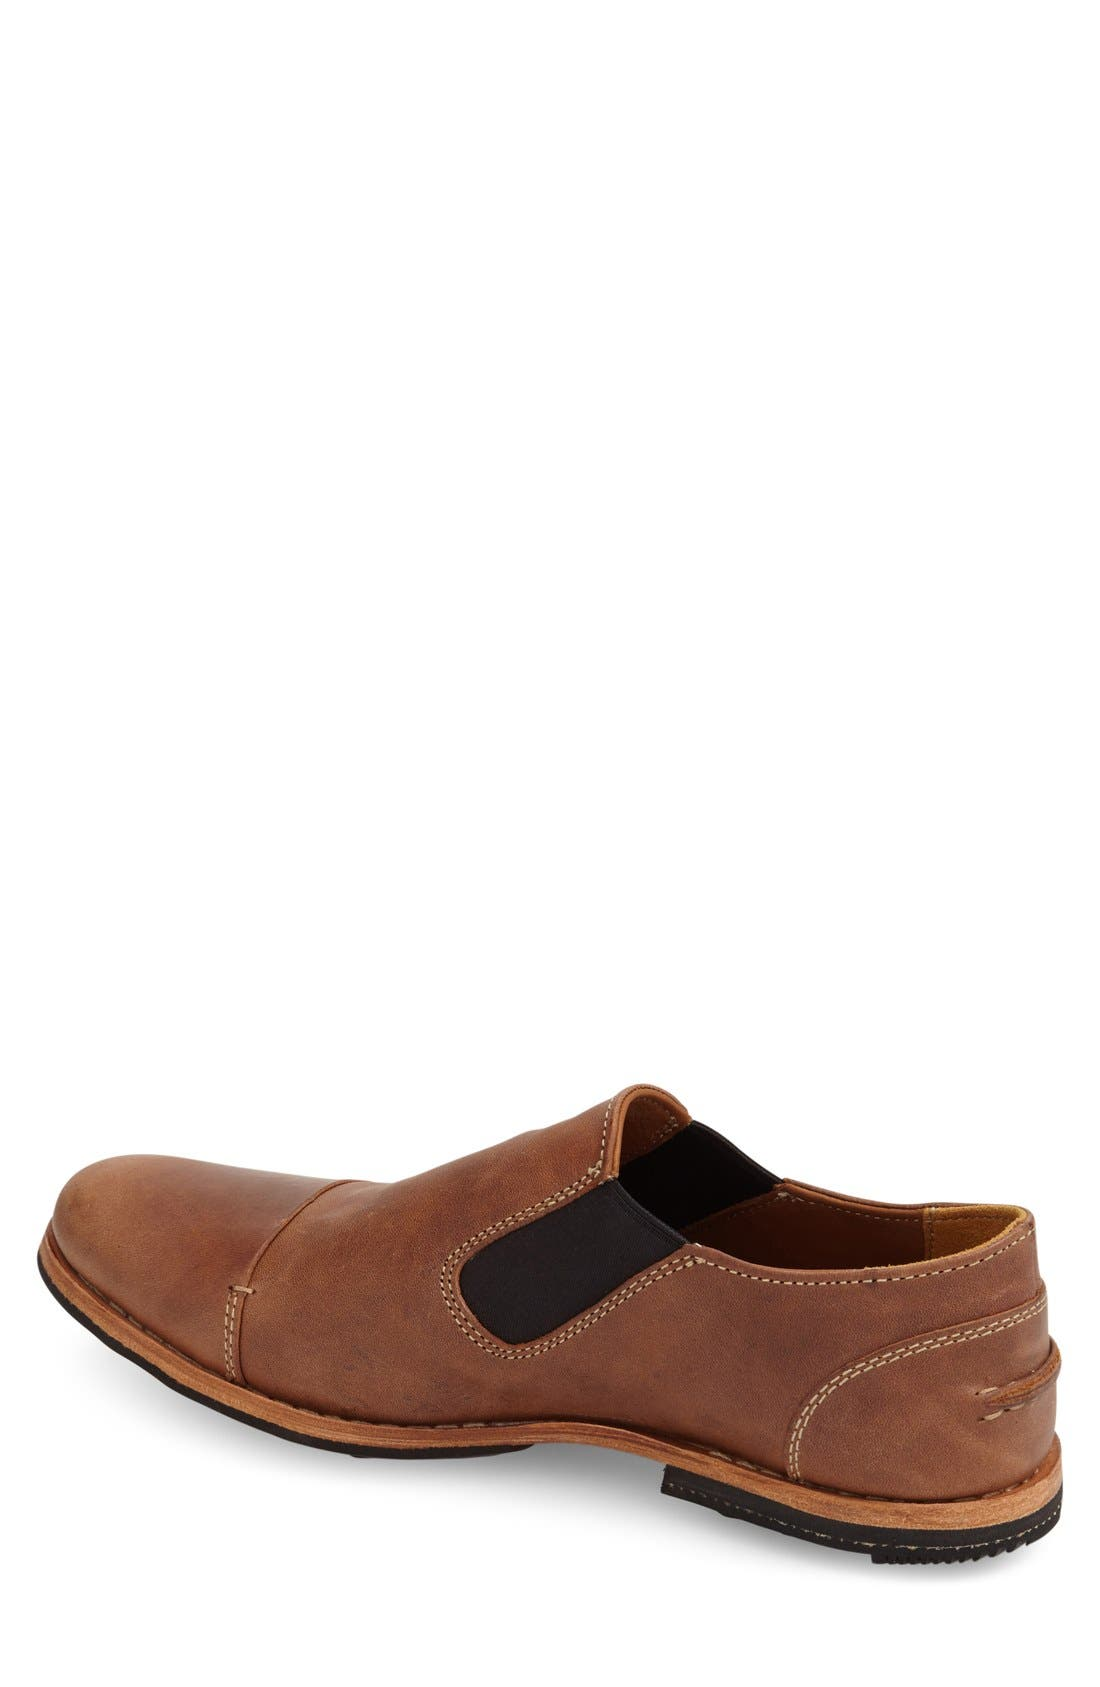 'Lost History' Venetian Loafer,                             Alternate thumbnail 12, color,